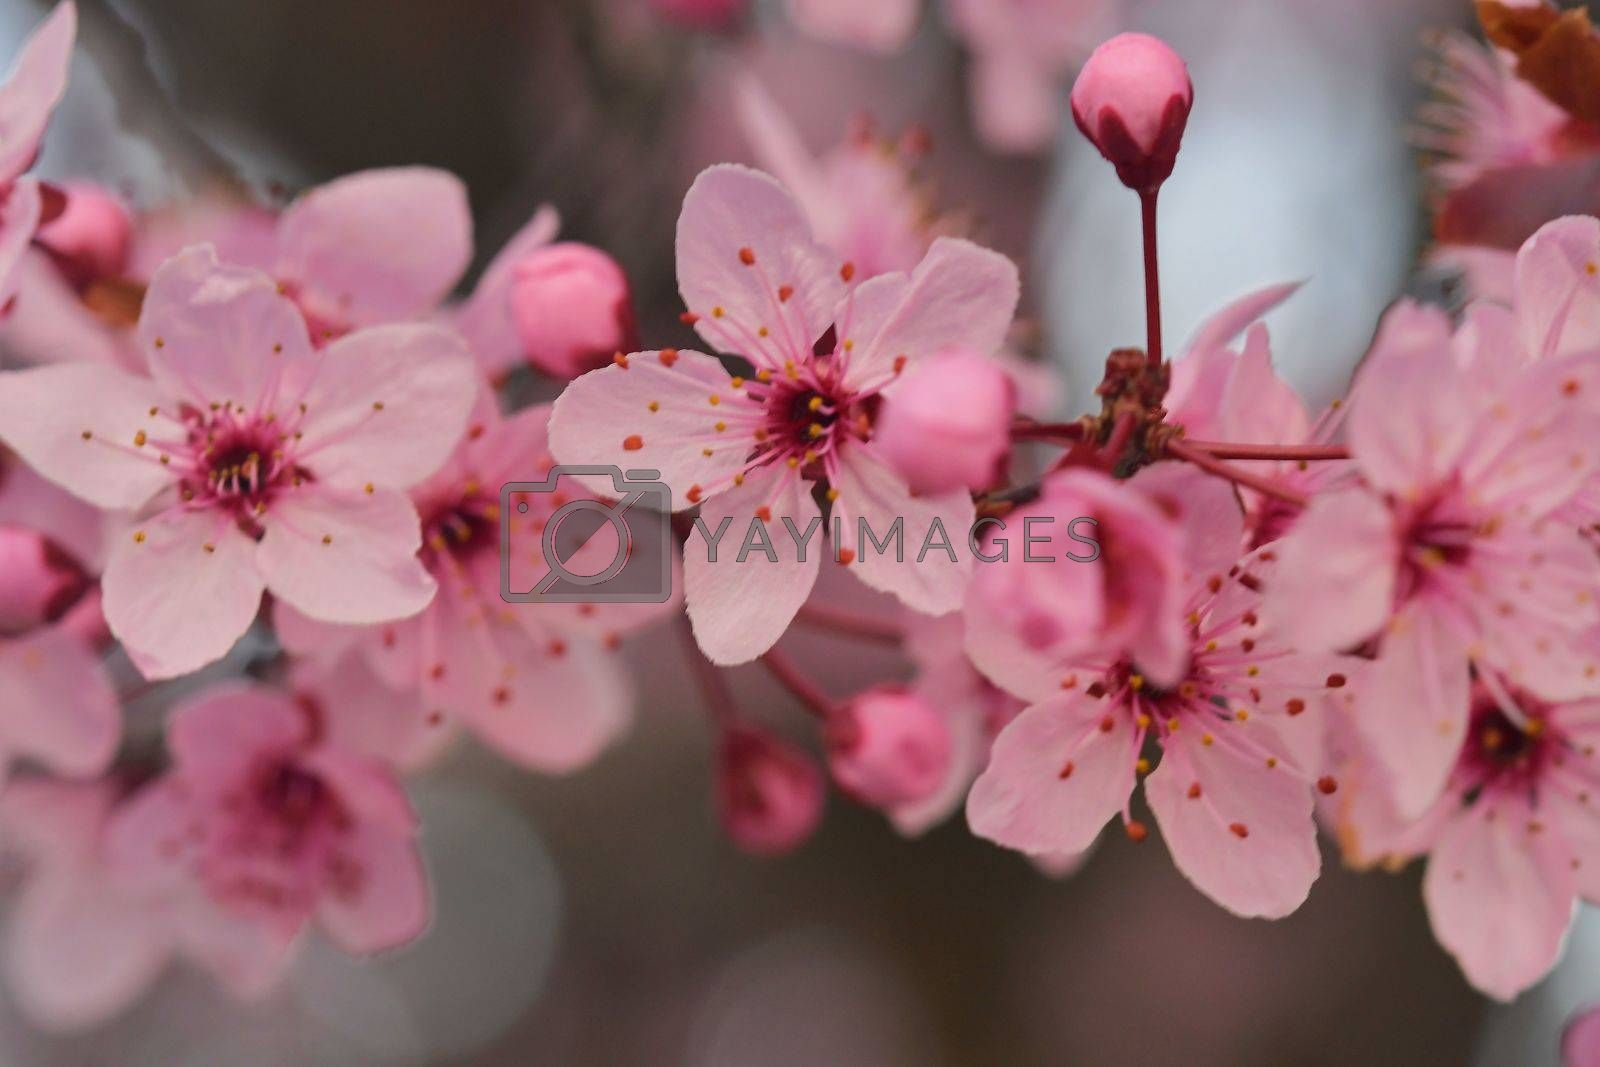 Royalty free image of Close-up image of the blossom on a Prunus serrulata, flowering cherry tree. Spring time. by roman_nerud